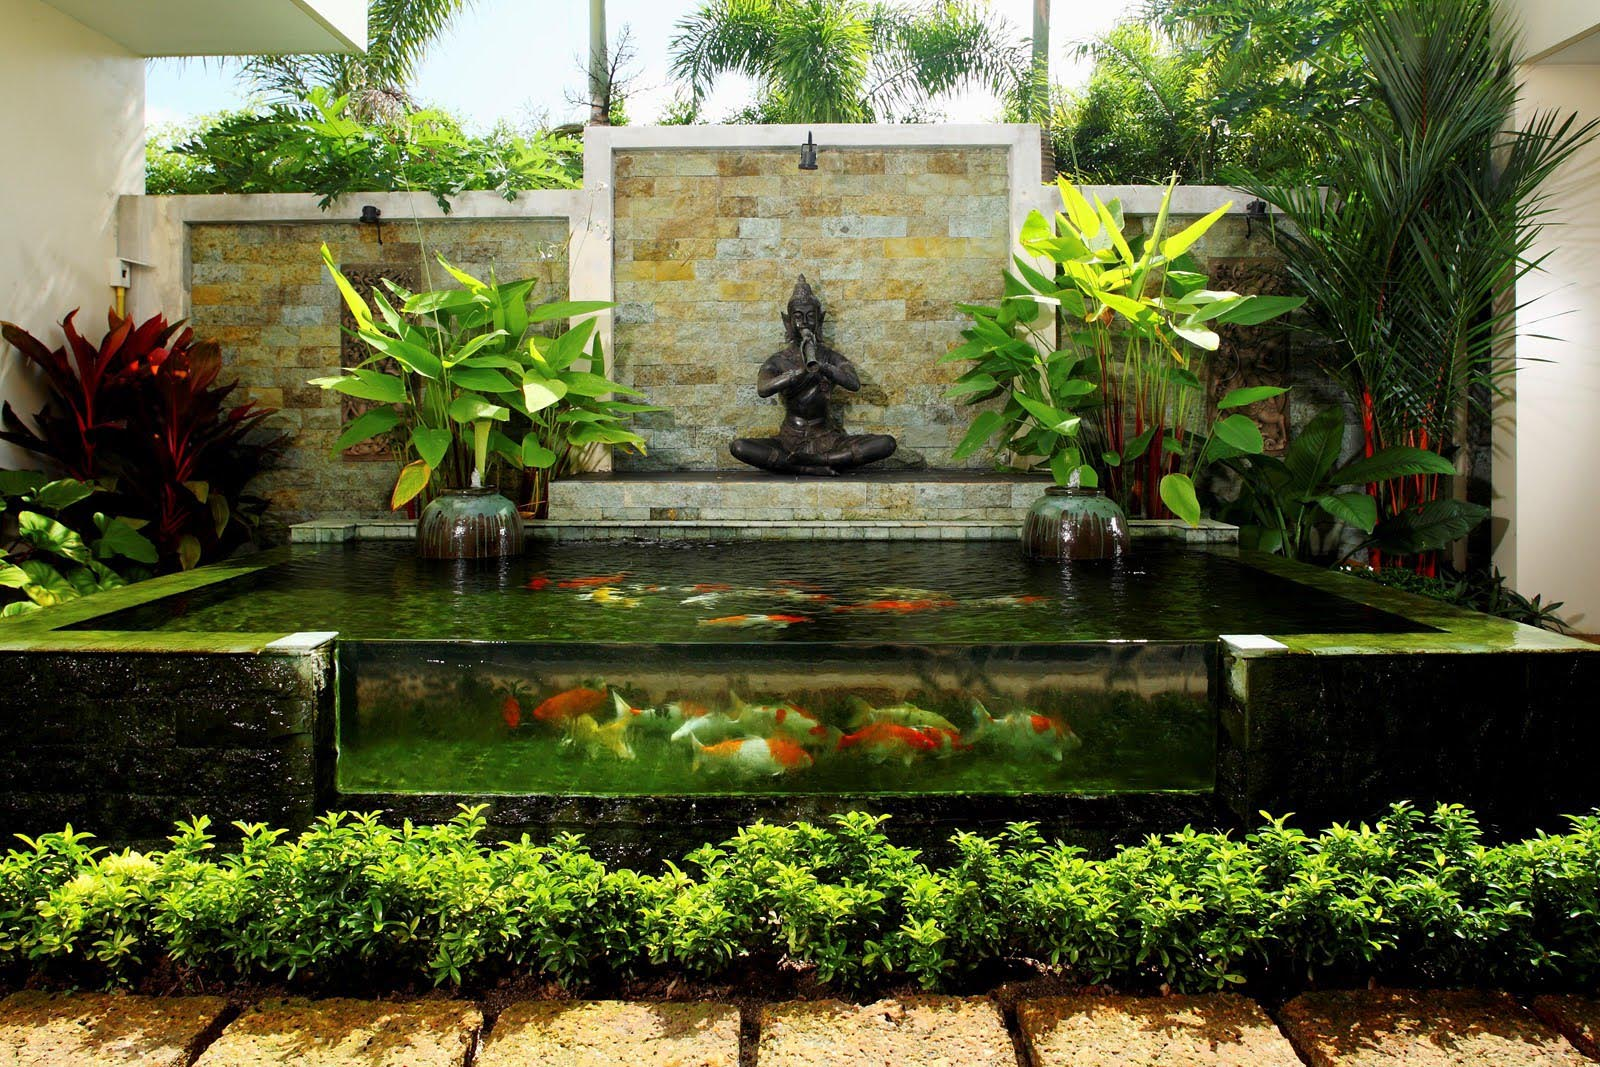 Building garden pond fountains backyard design ideas for Pond features